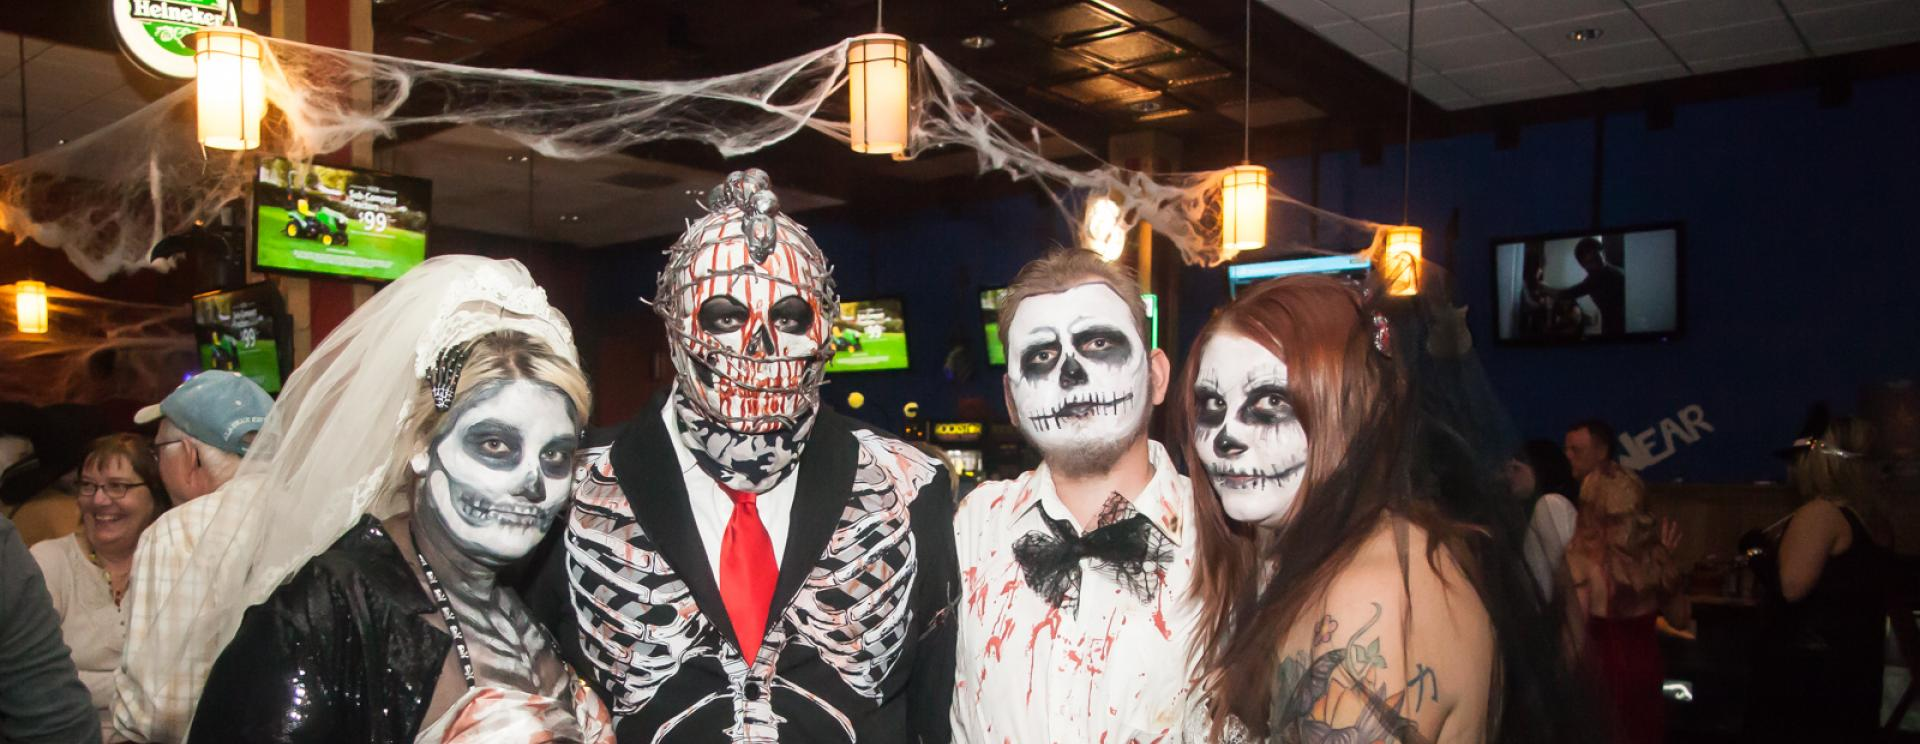 Ghosts and Goblins come out for Halloween Fun in the Black Hills & Badlands